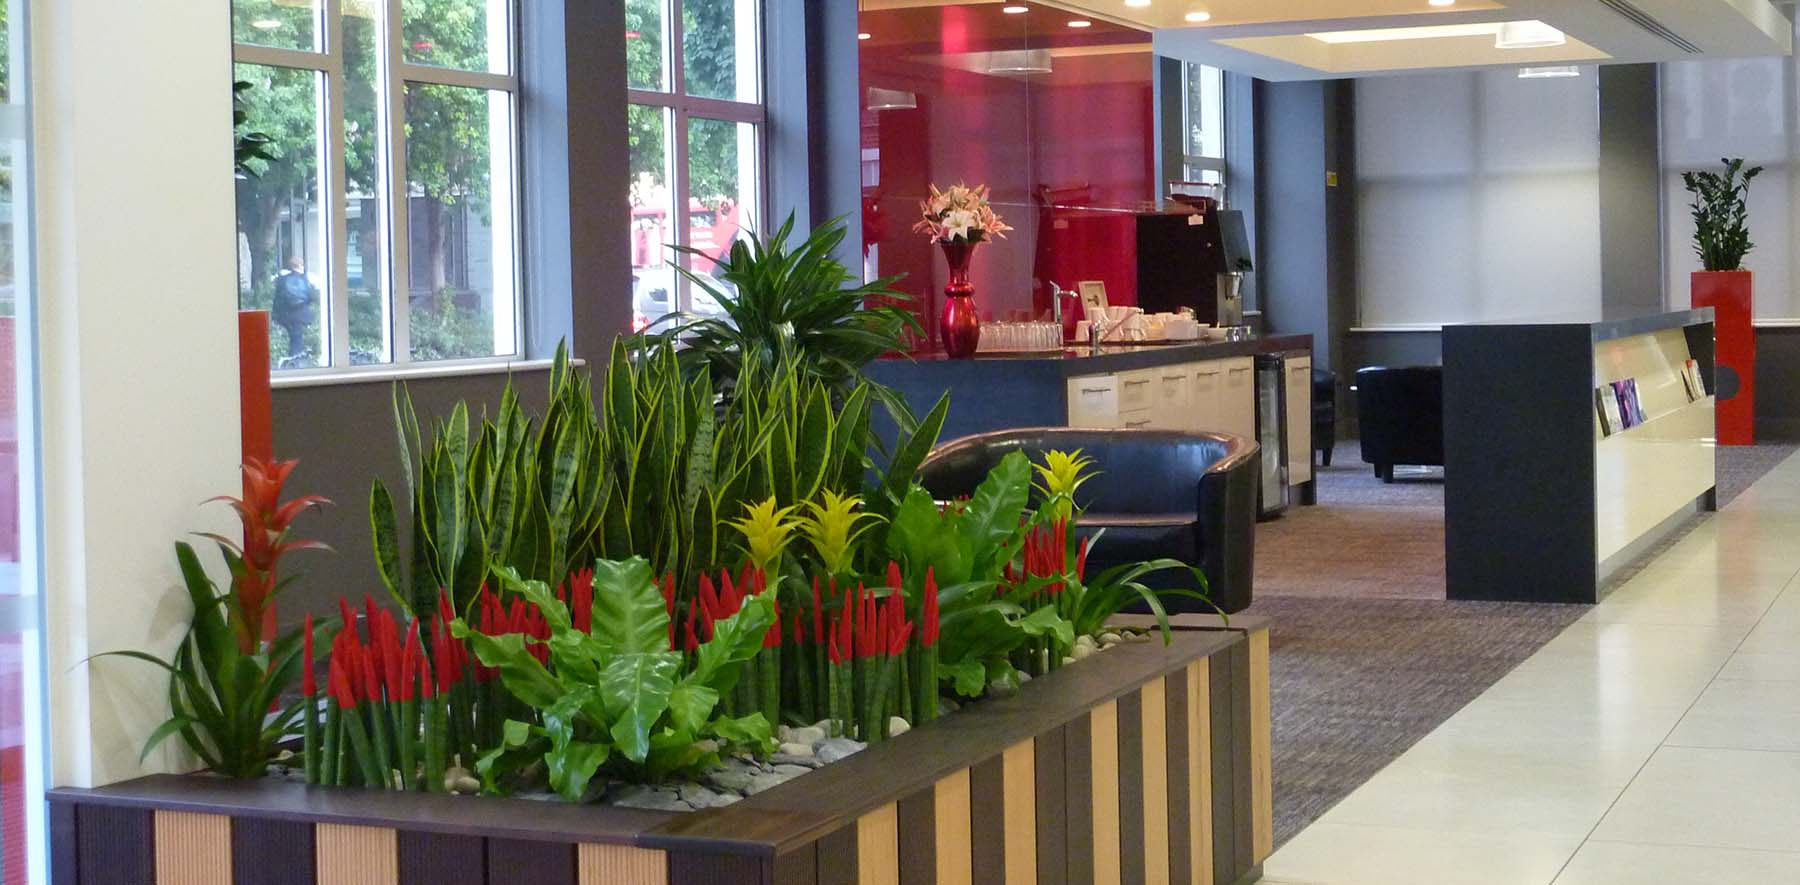 Colourful live planting welcomes visitors in London office. Built in planters include Guzmania and velvet-tipped Sansevieria